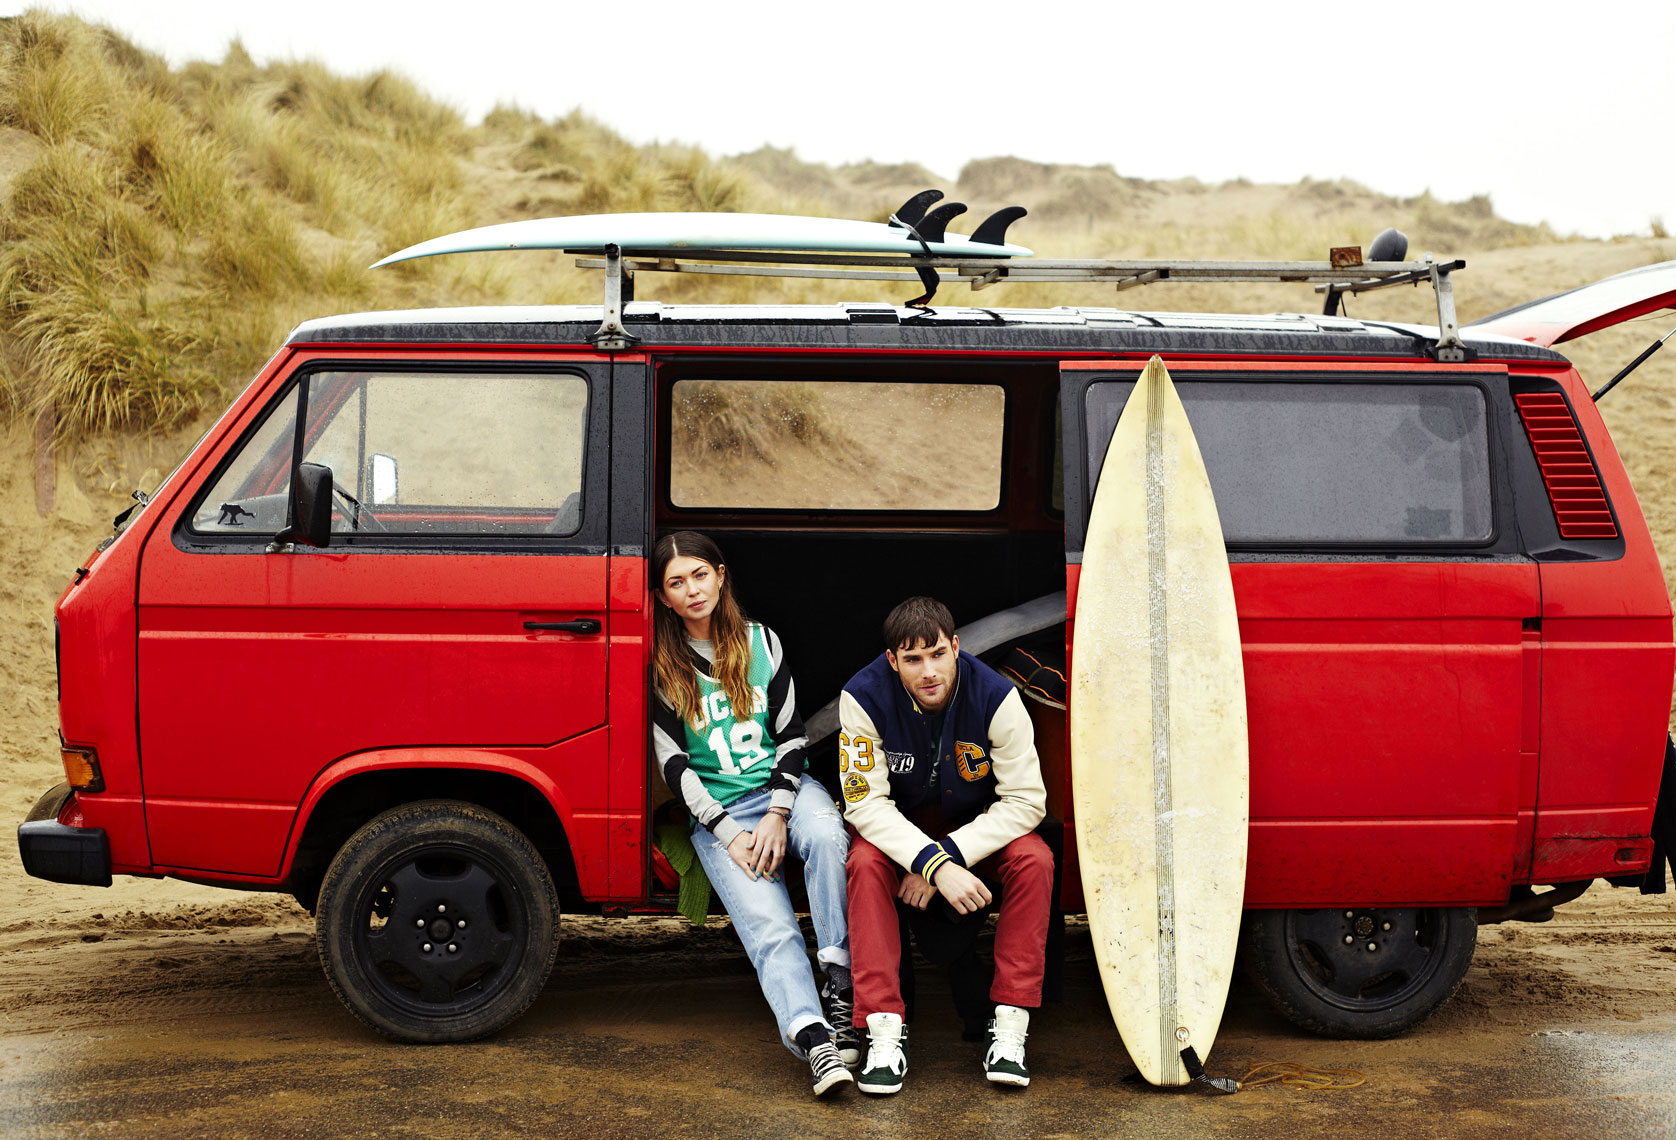 issie-gibbons-fashion-stylist-UCLA-AW14-surf-camper-van